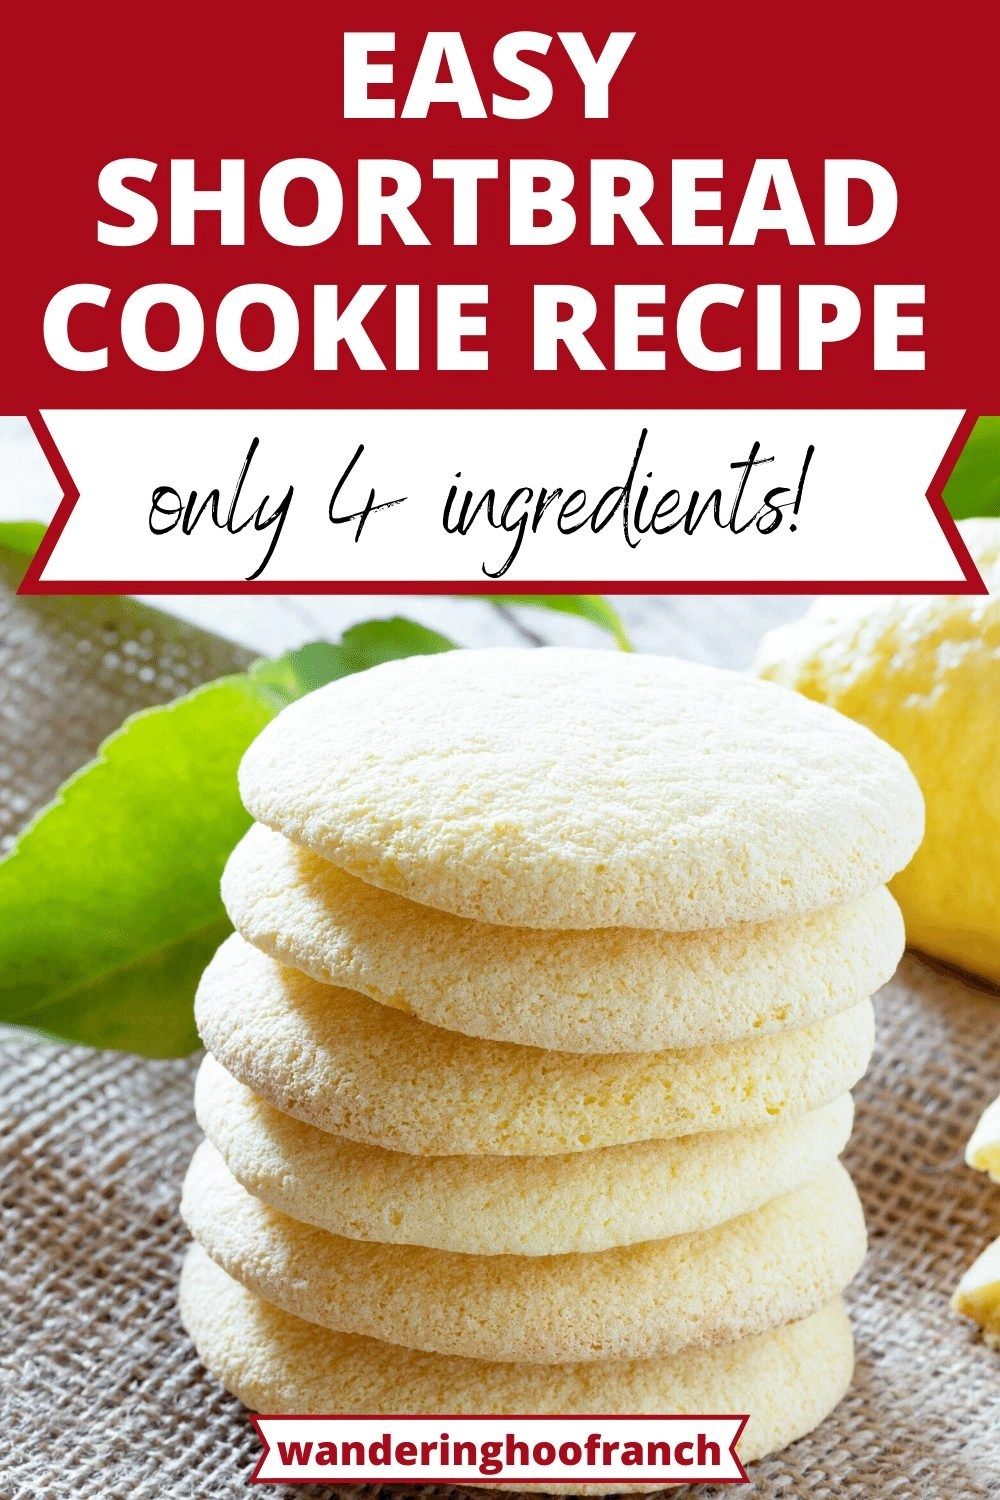 Easy Shortbread cookie recipe pin with cookies stacked on burlap